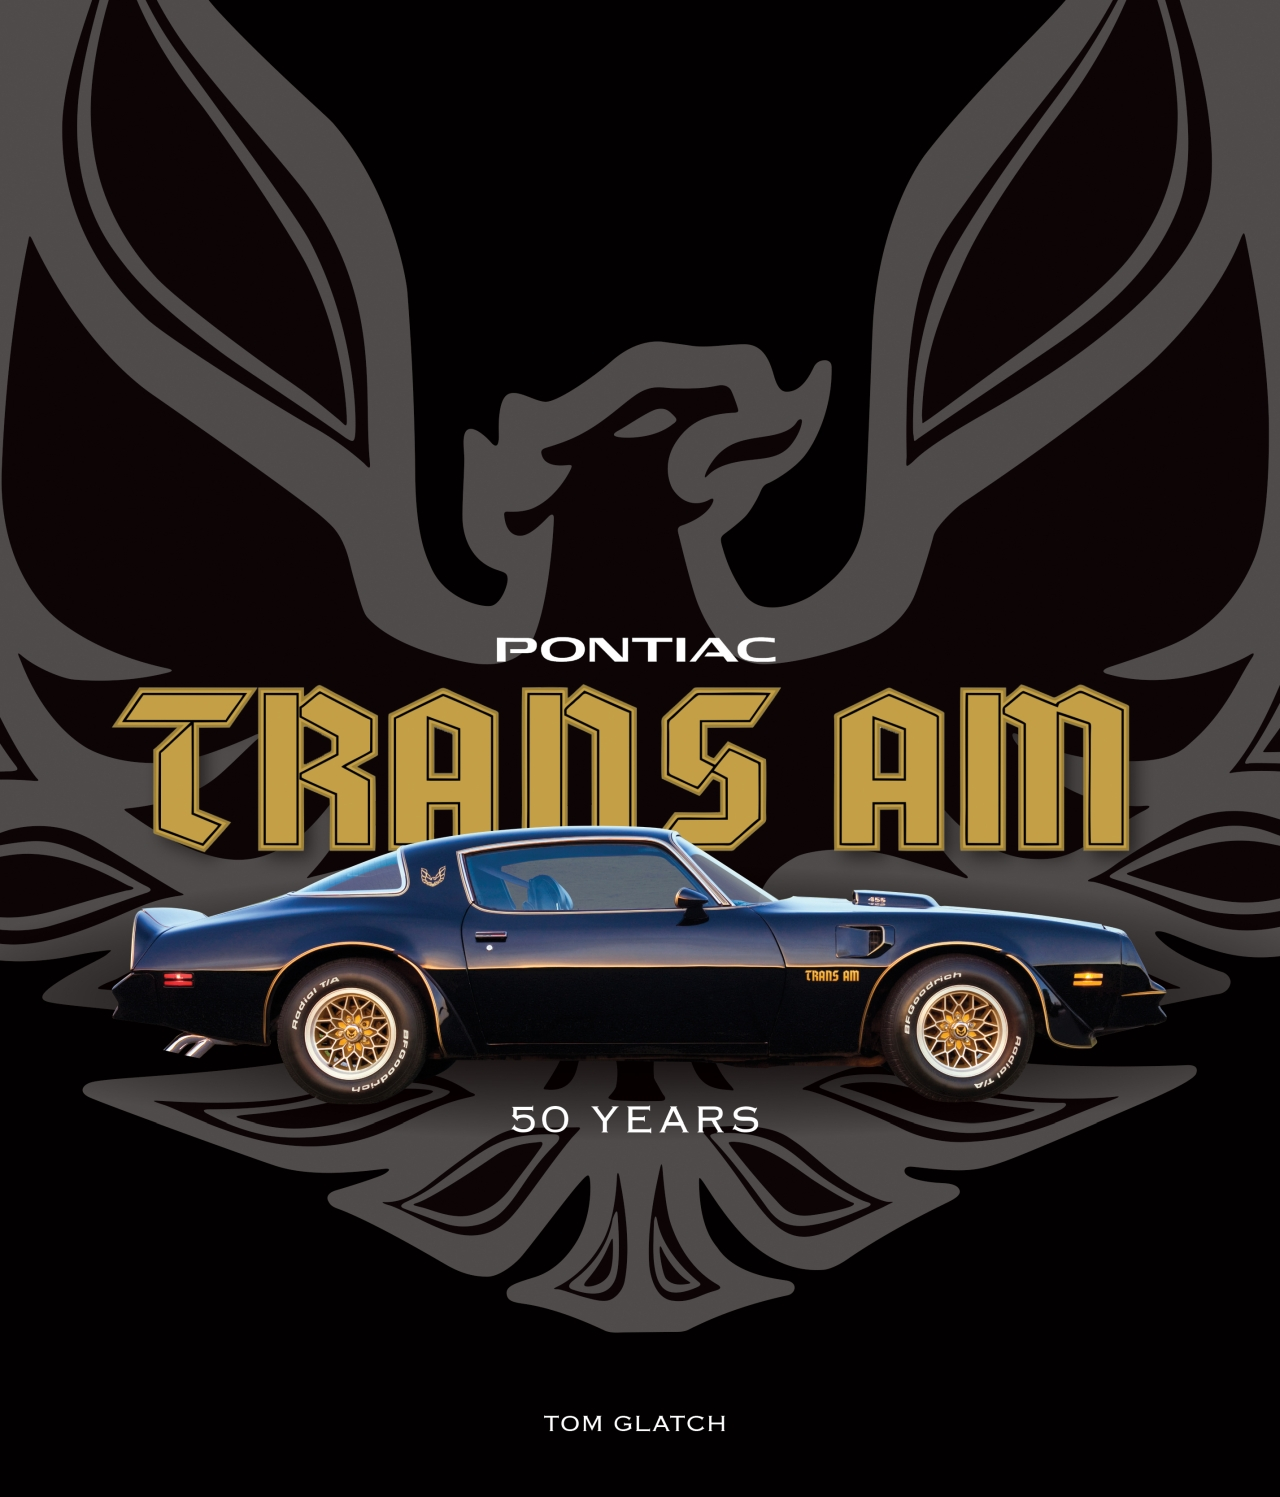 Pontiac Trans Am 50 years - 9780760357668